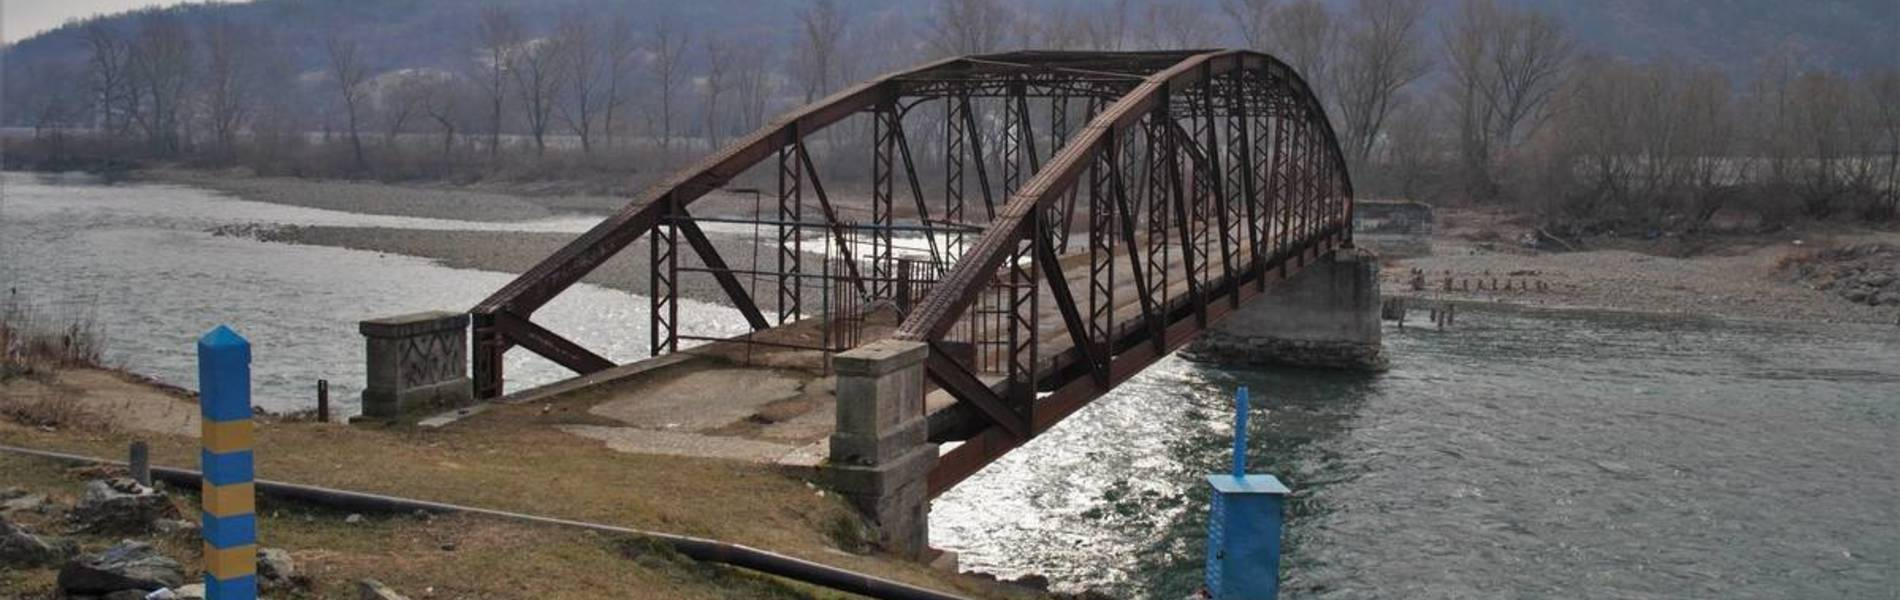 Tyachiv bridge: AH infrastructure development in Zakarpattya Oblast